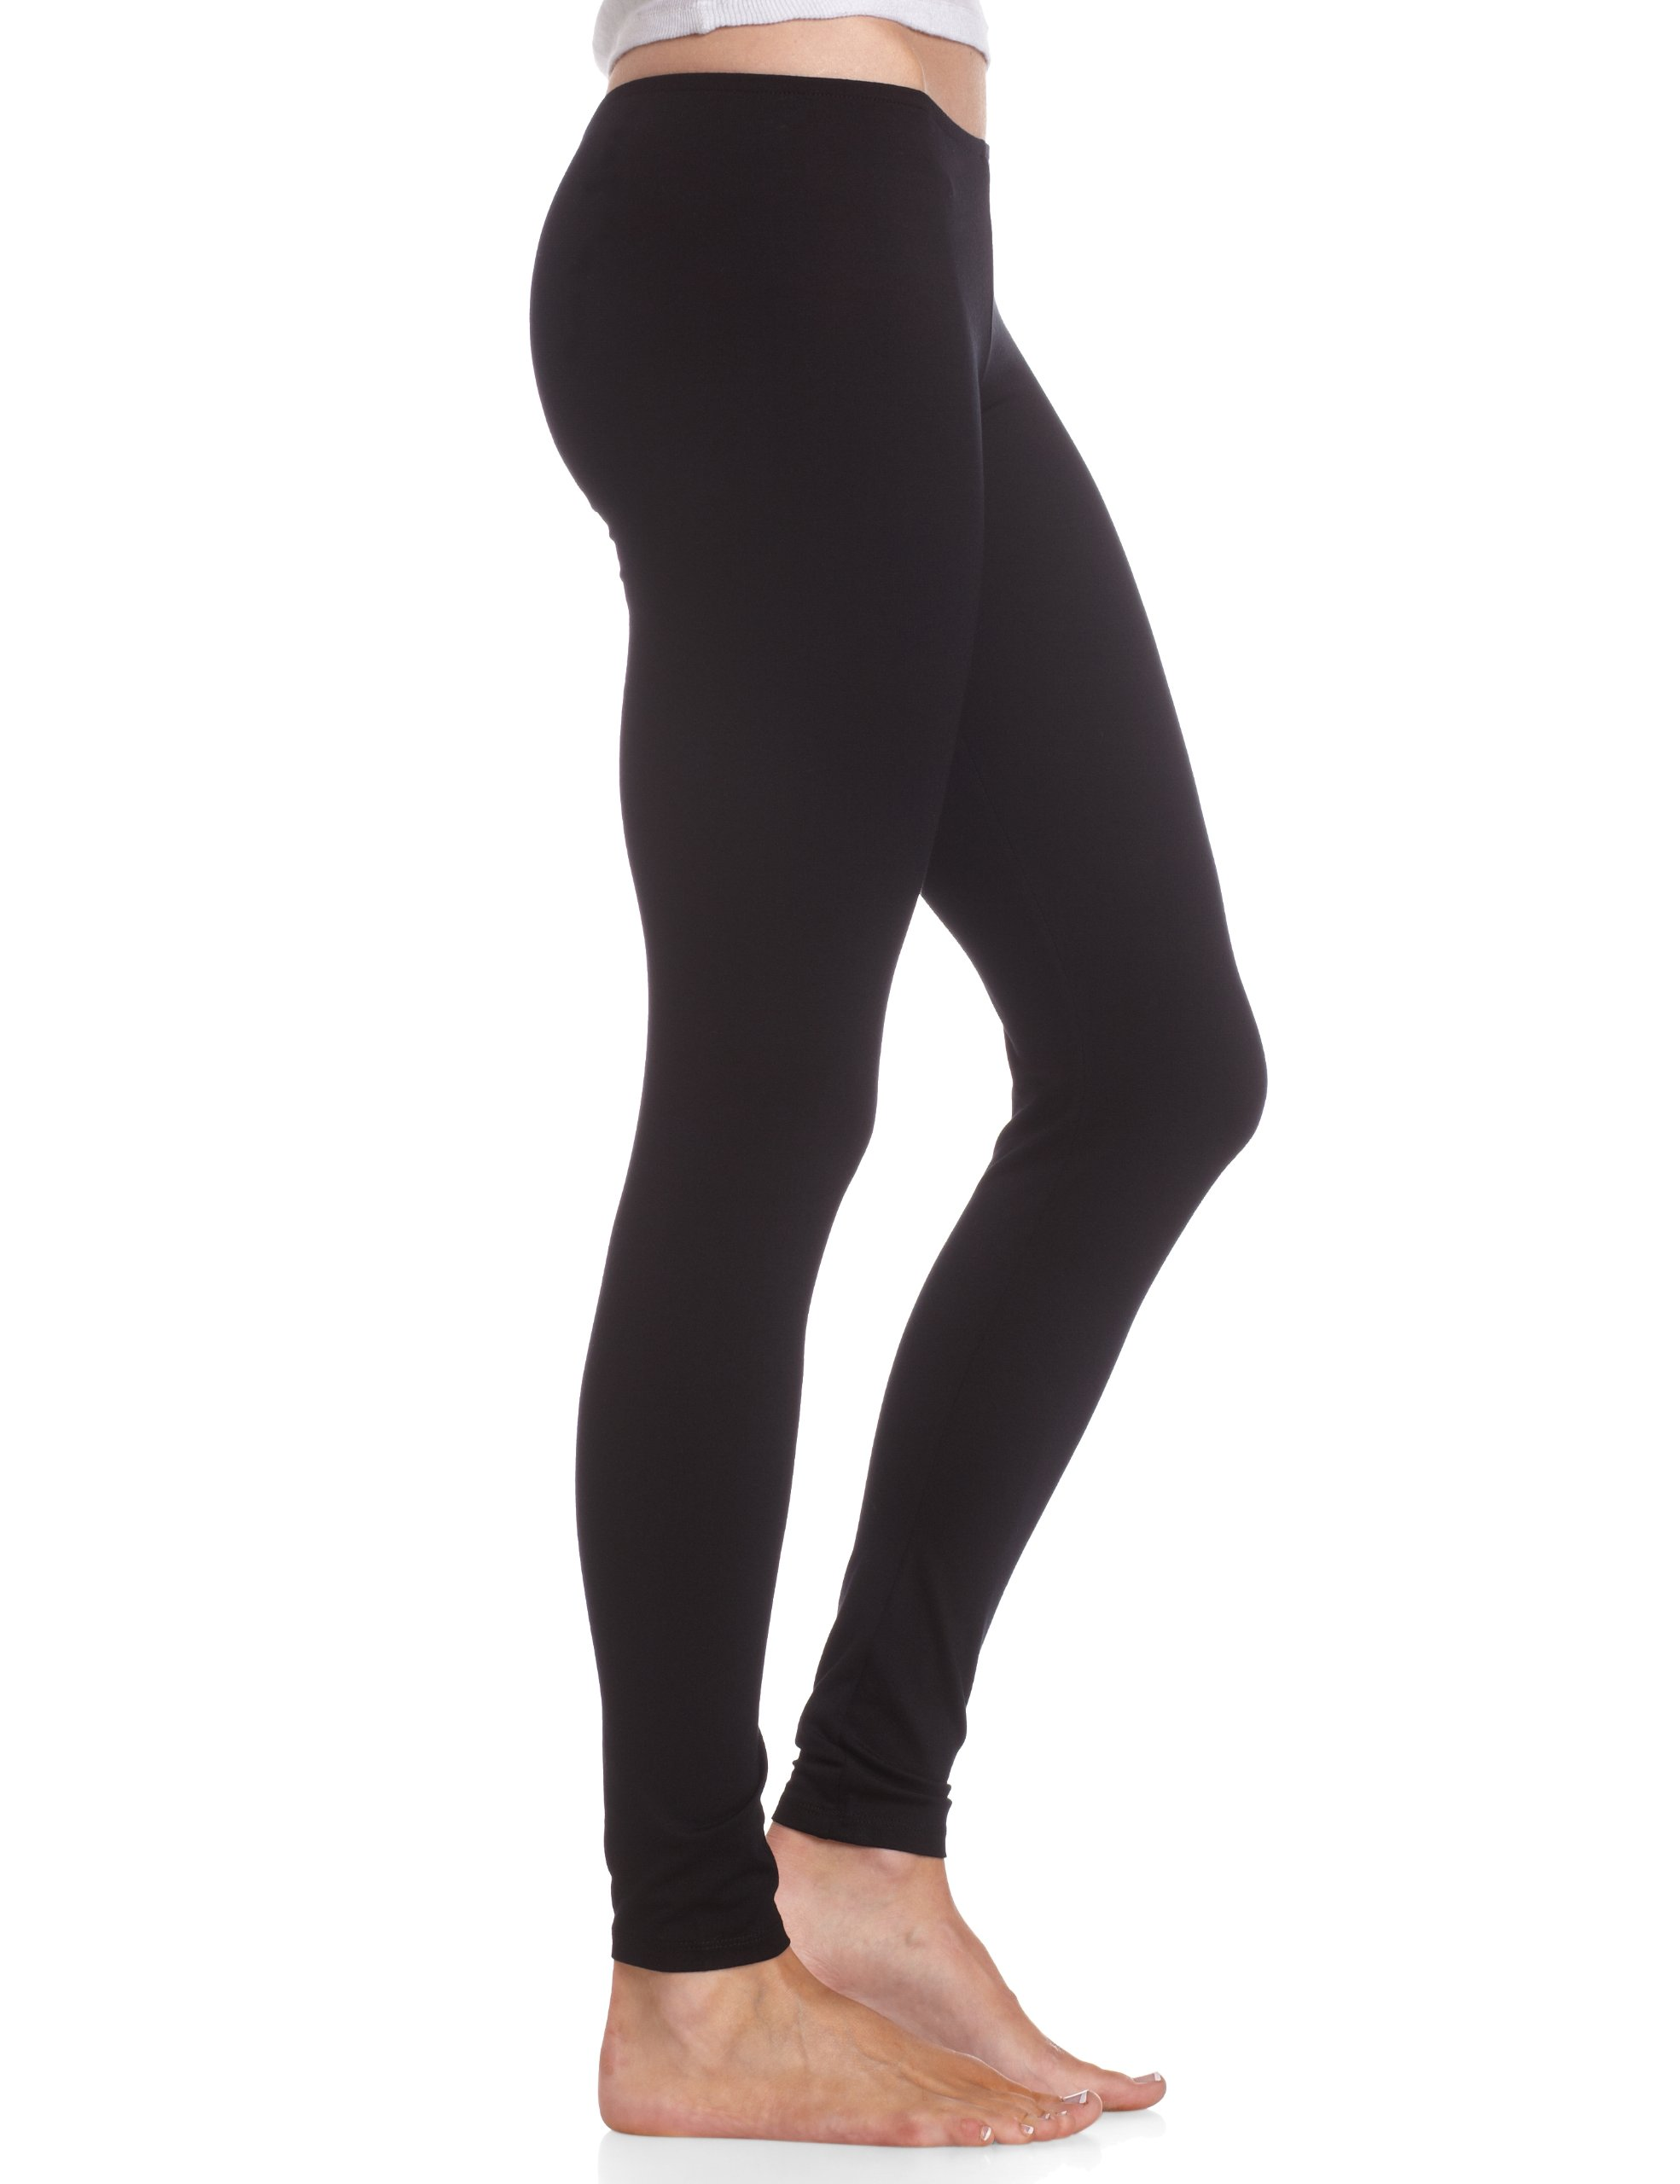 Only Hearts Women's So Fine Legging - 20078,Black,X-Small by Only Hearts (Image #3)